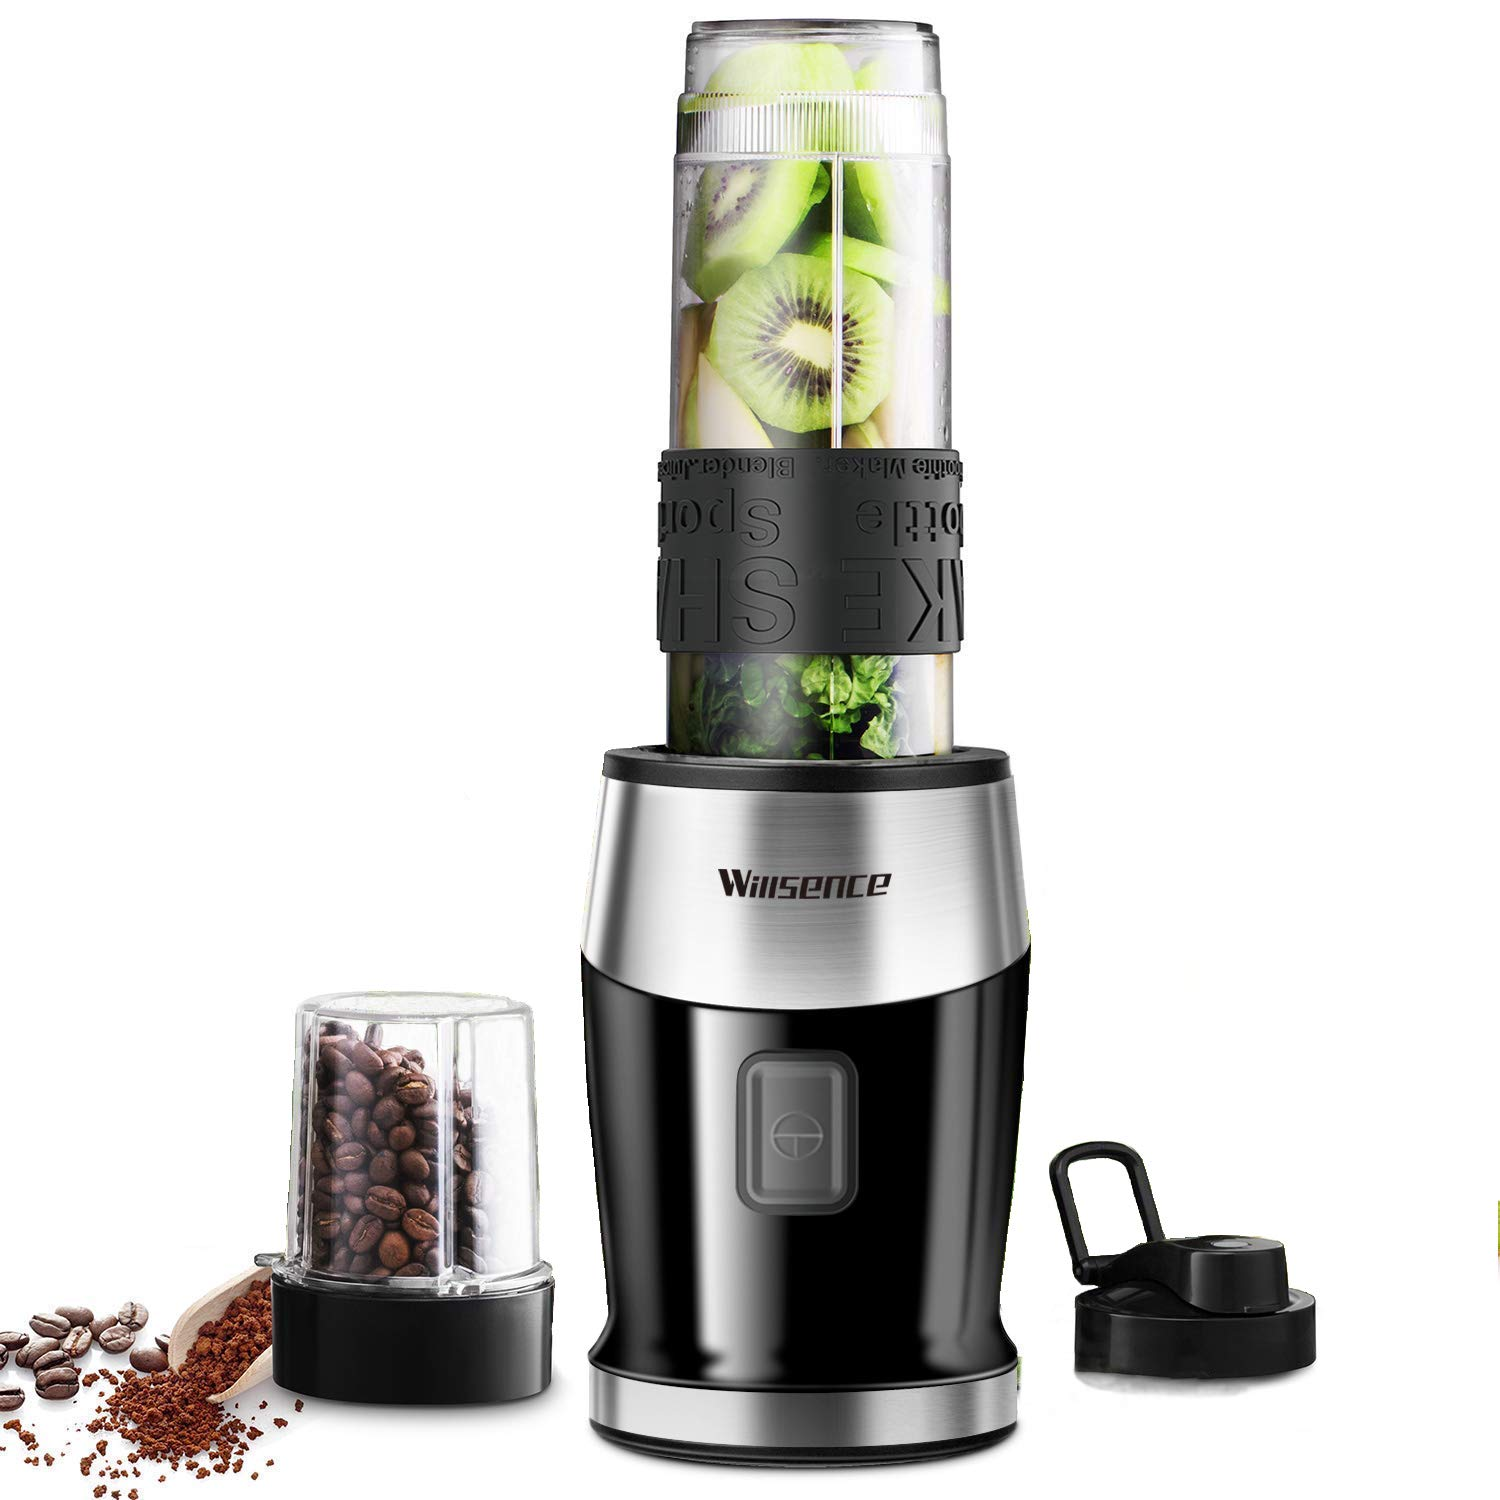 Willsence Personal Blender Smoothies Blender(Coffee Grinder Included) 300W High Speed Single Serve Blender for Shakes and Smoothies with 20 oz Tritan Sports Bottle, Travel Lids by Willsence